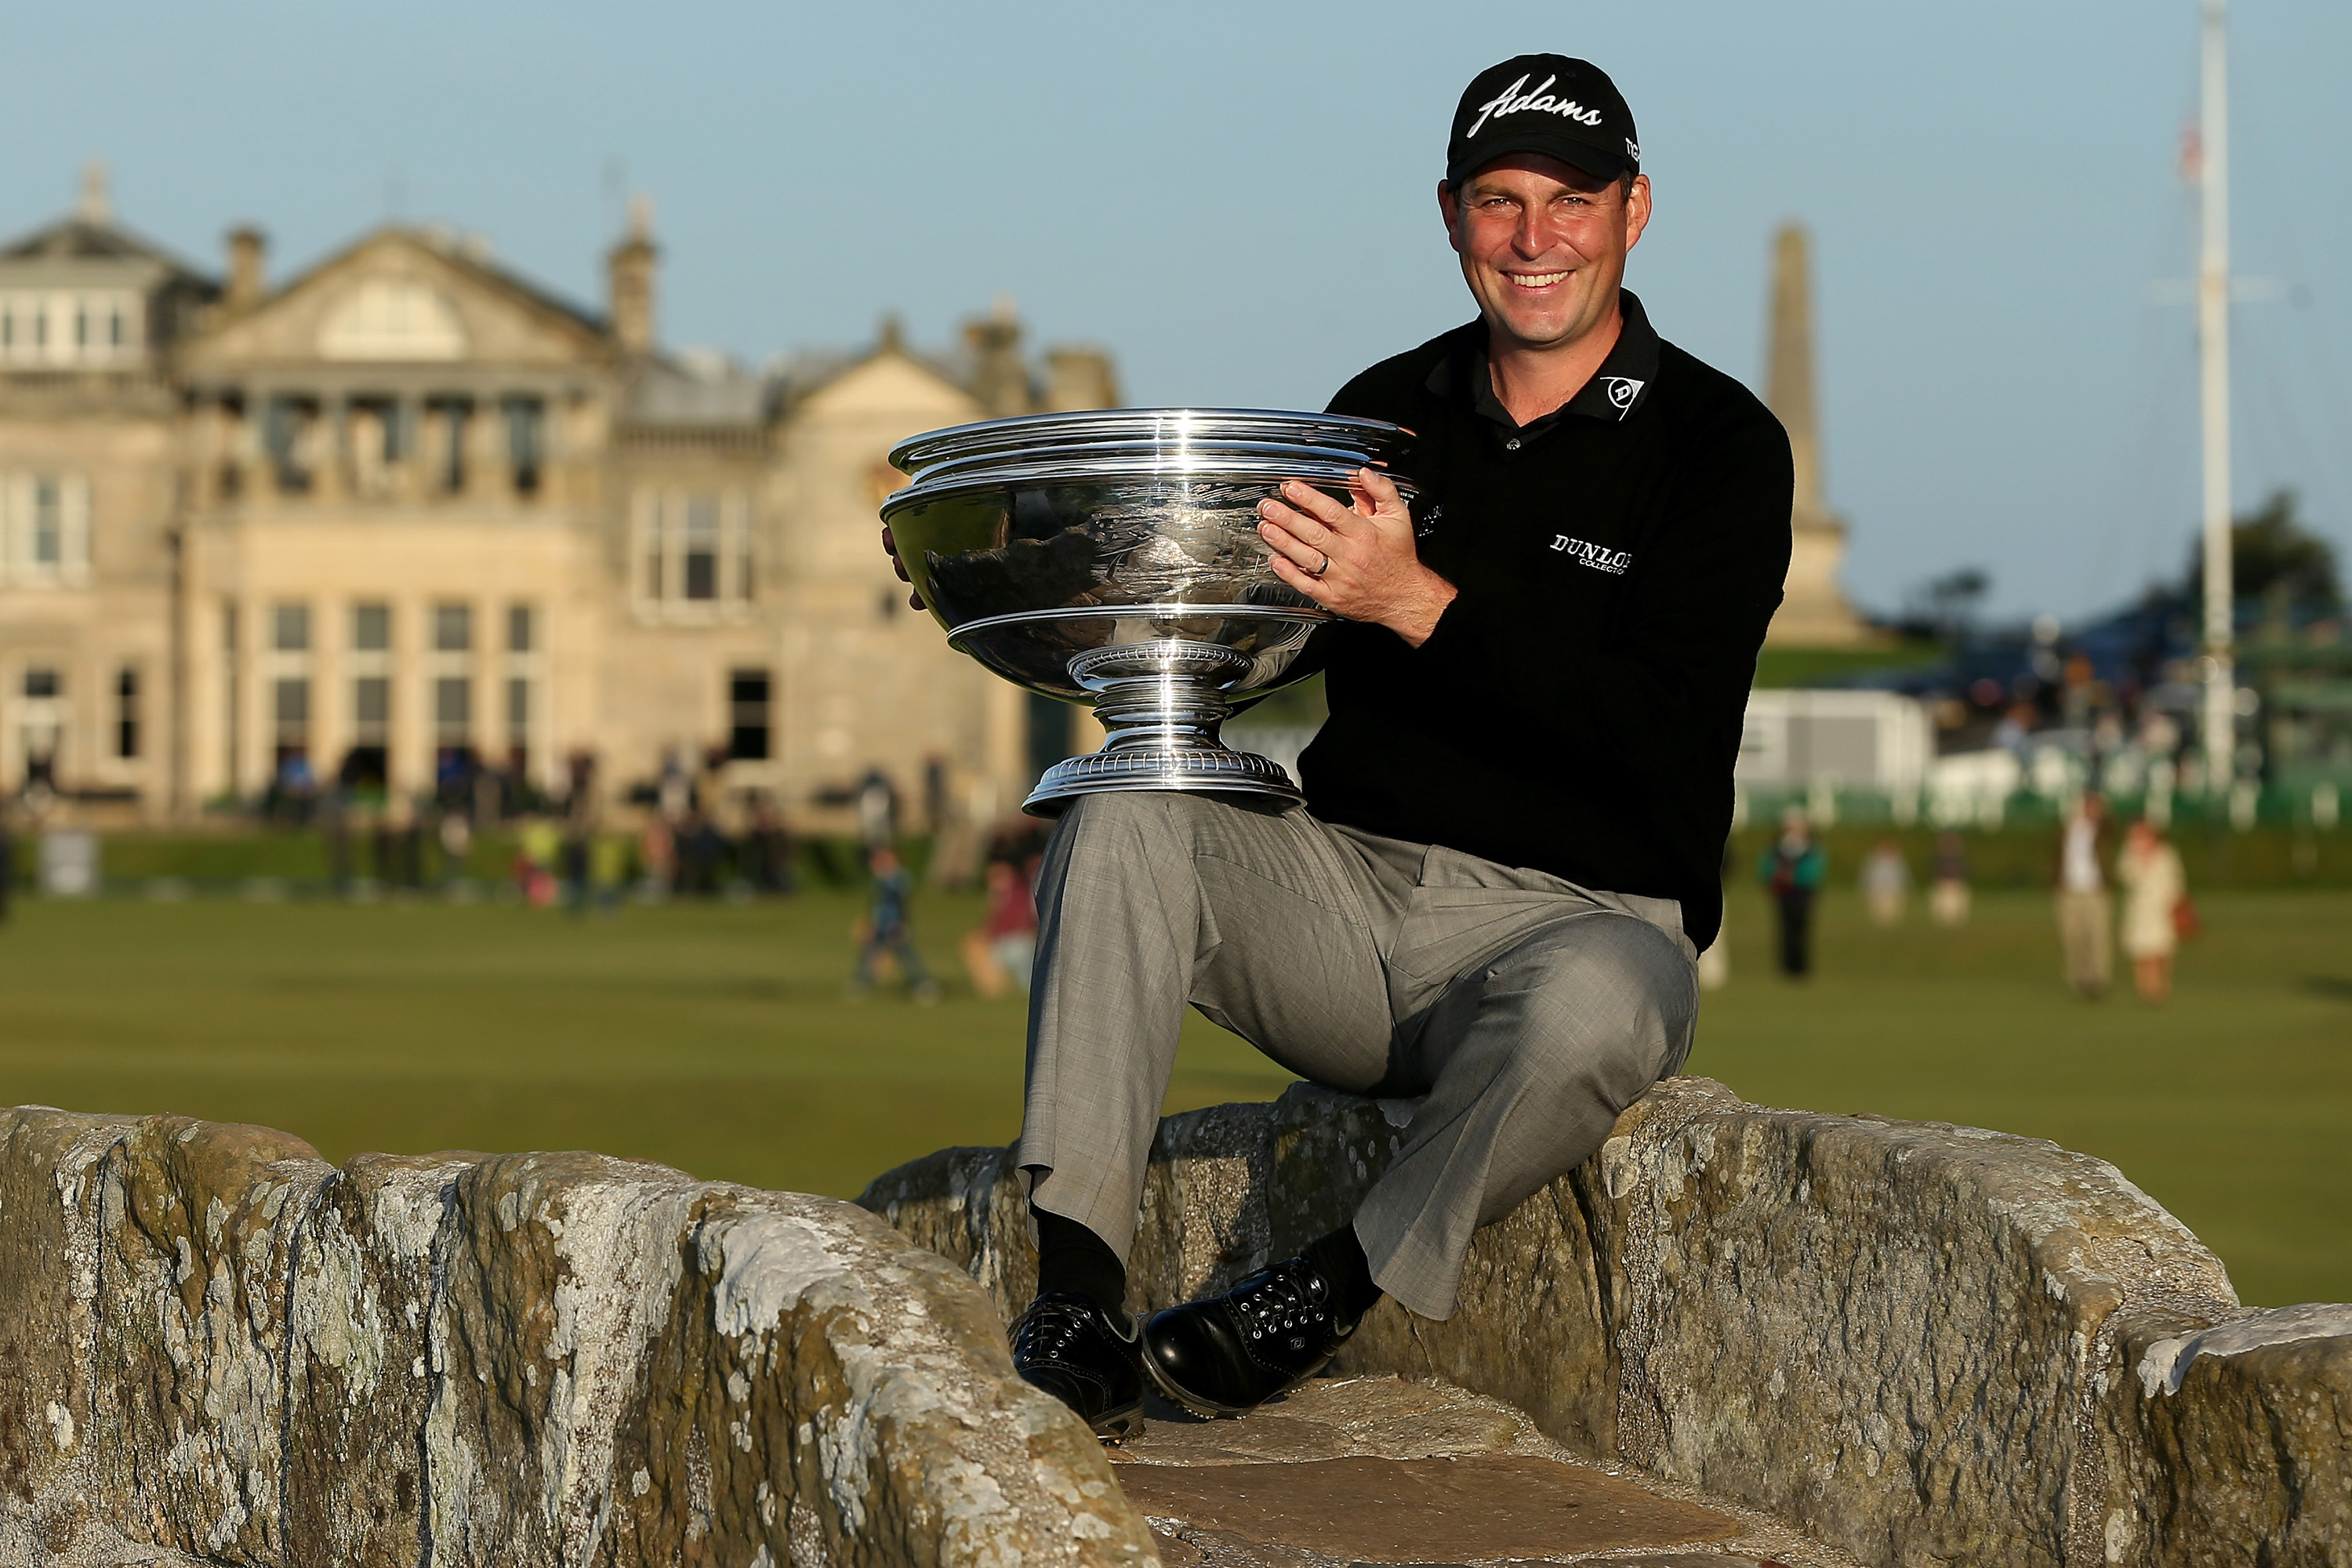 Howell won the Dunhill Links Championship at St Andrews in 2013 (Photo: Getty Images)